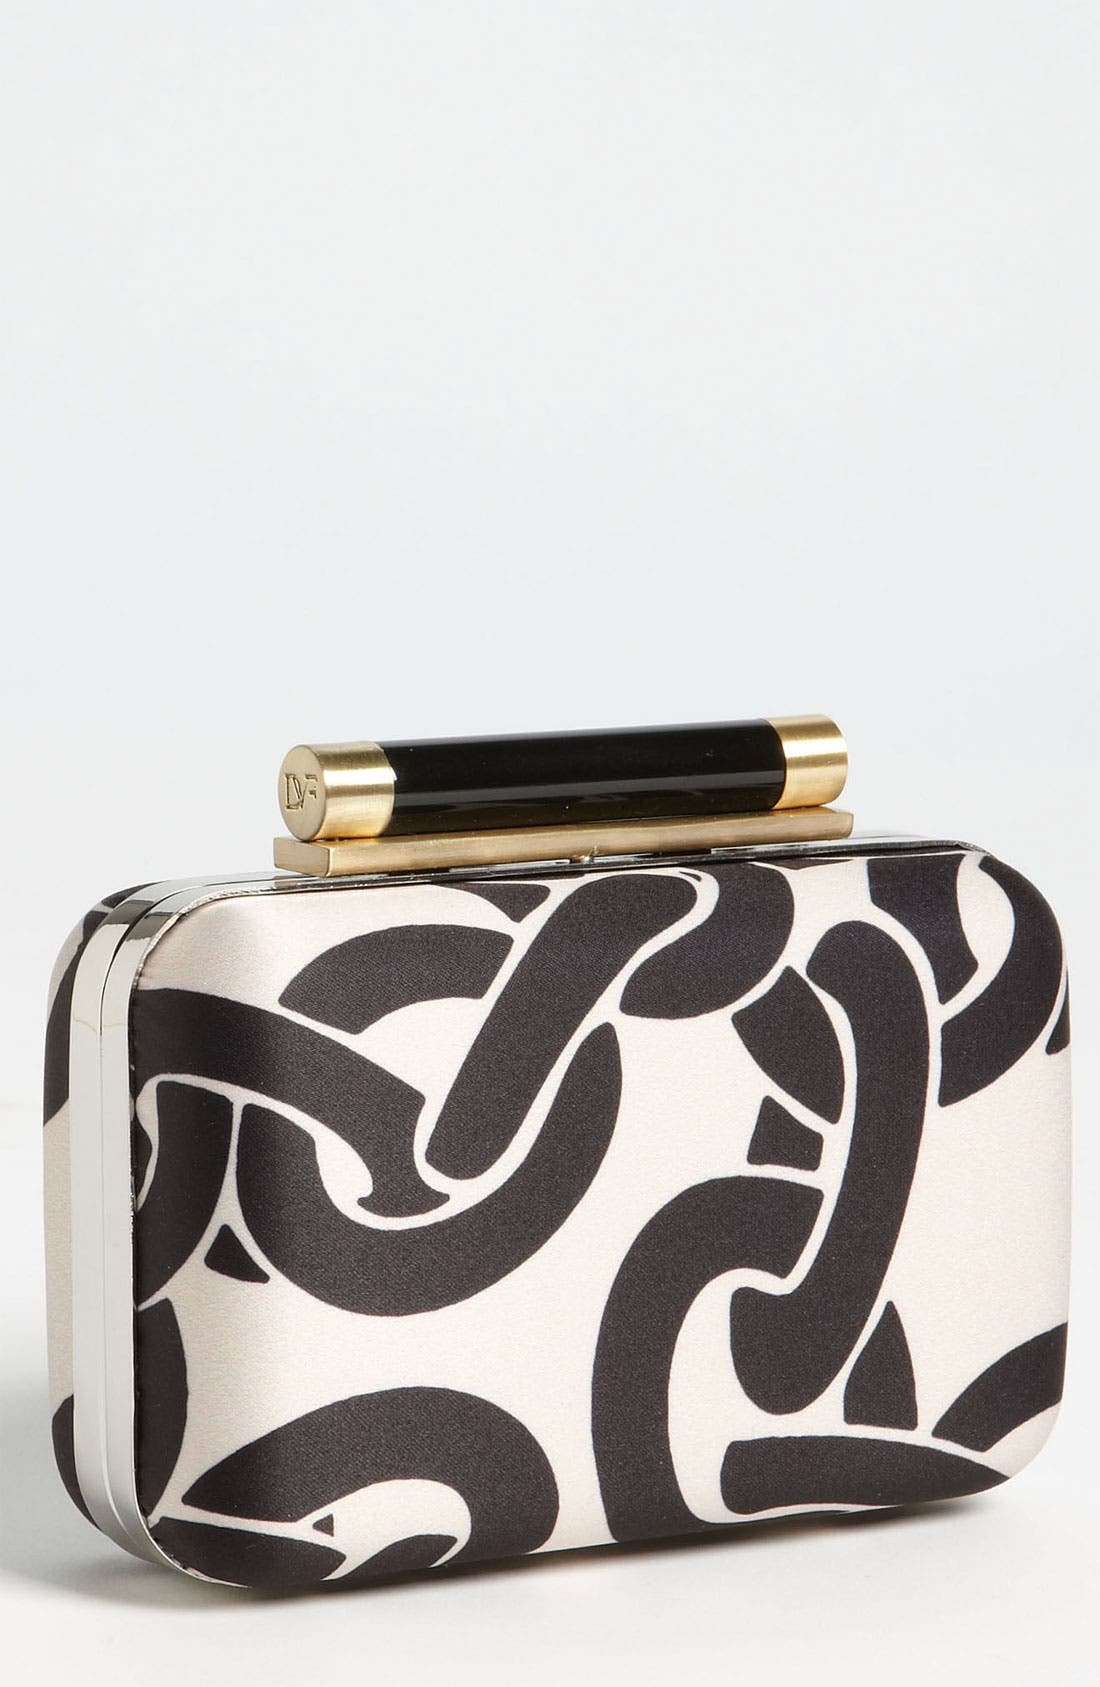 Alternate Image 1 Selected - Diane von Furstenberg 'Tonda' Satin Clutch